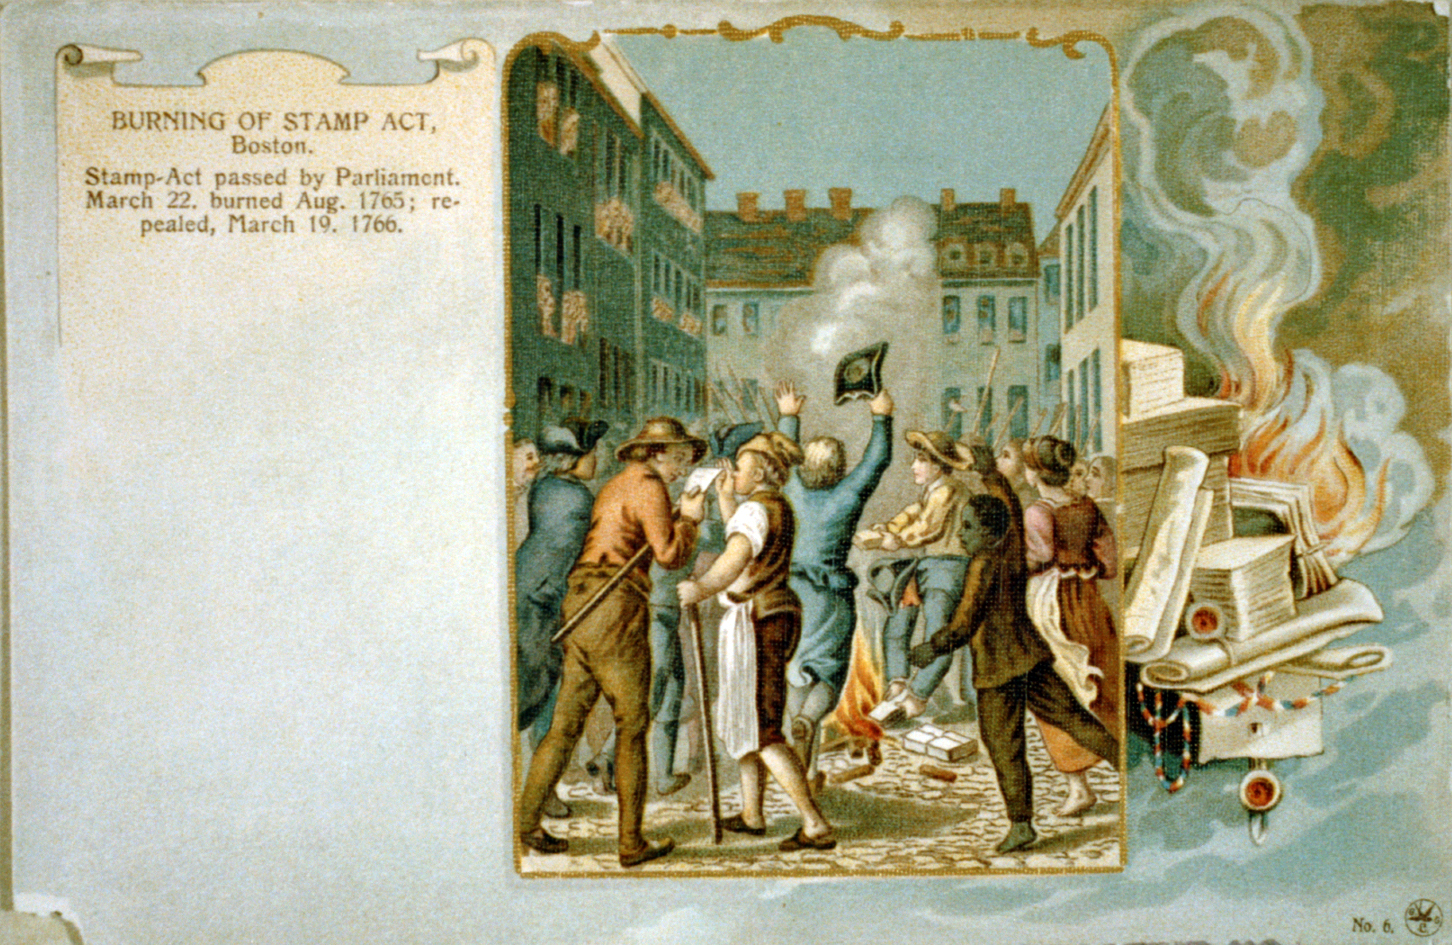 essay on the stamp act of 1765 Free essay: the passing of the stamp act by parliament in 1765 caused a rush of angry protests by the colonists in british america that perhaps aroused.